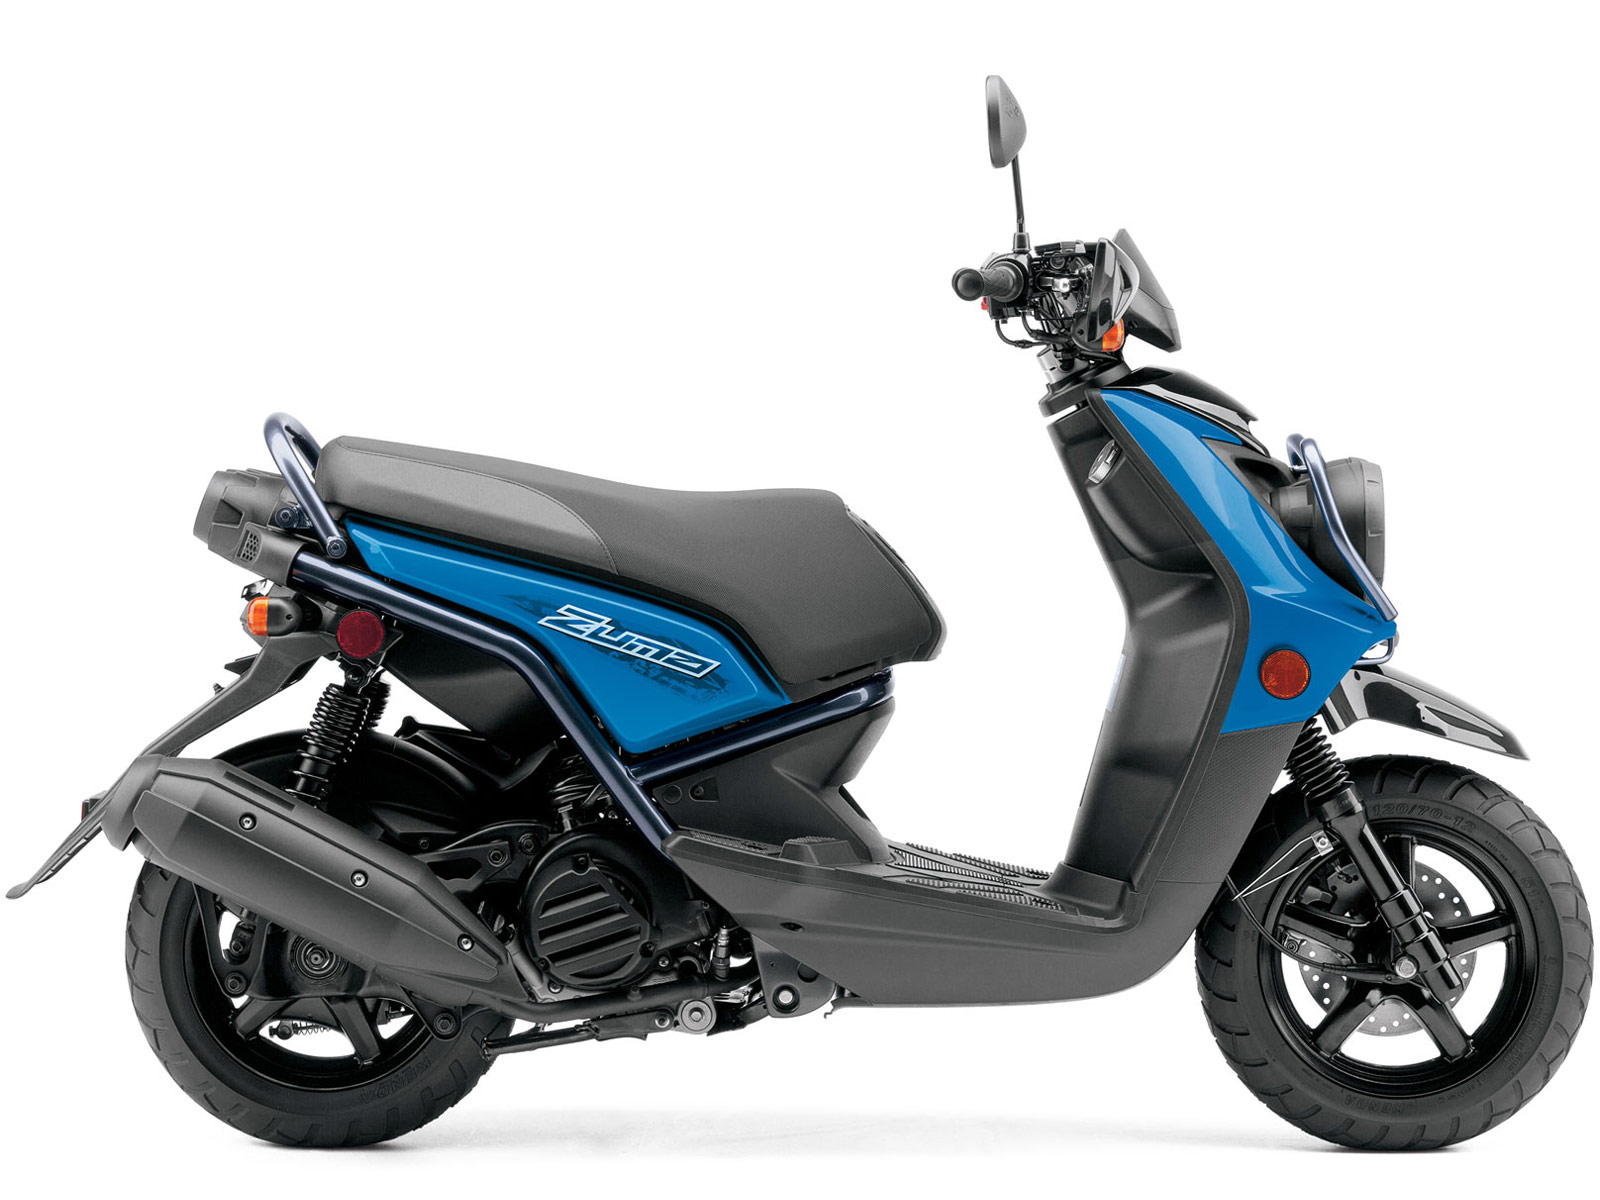 insurance information 2013 yamaha zuma 125 scooter pictures specs. Black Bedroom Furniture Sets. Home Design Ideas